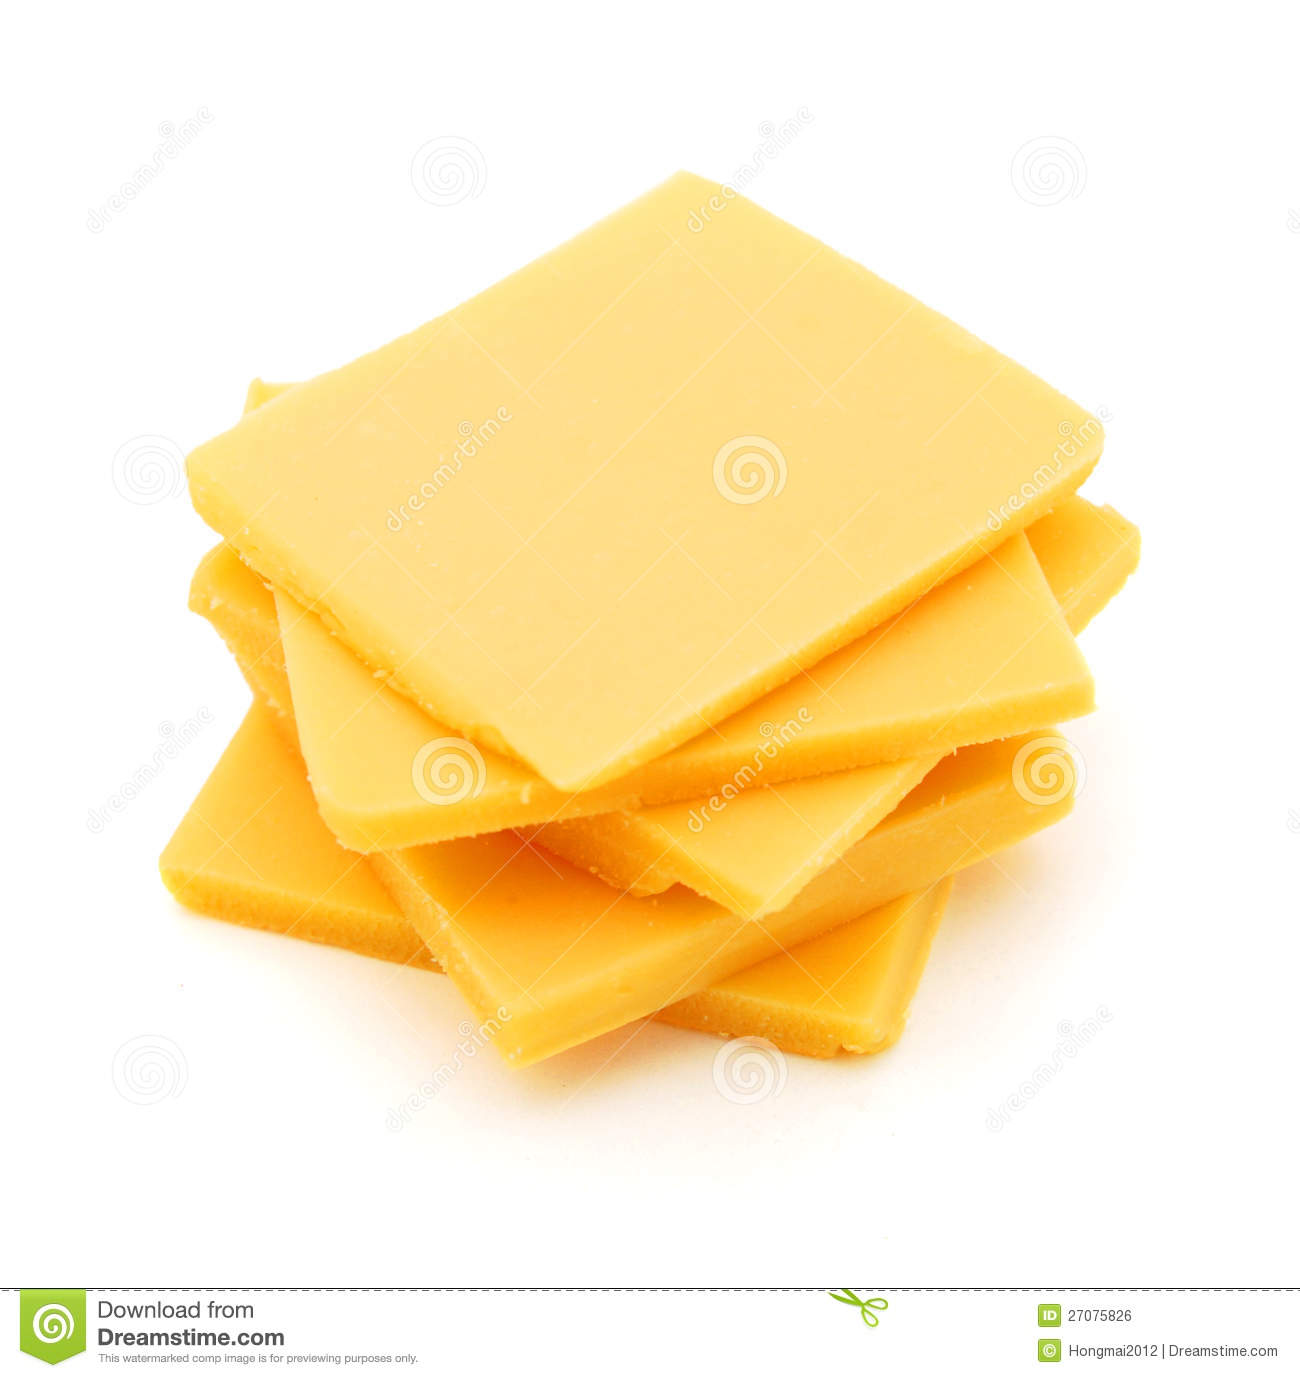 Sliced cheese clipart cheddar cheese slices royalty free stock image